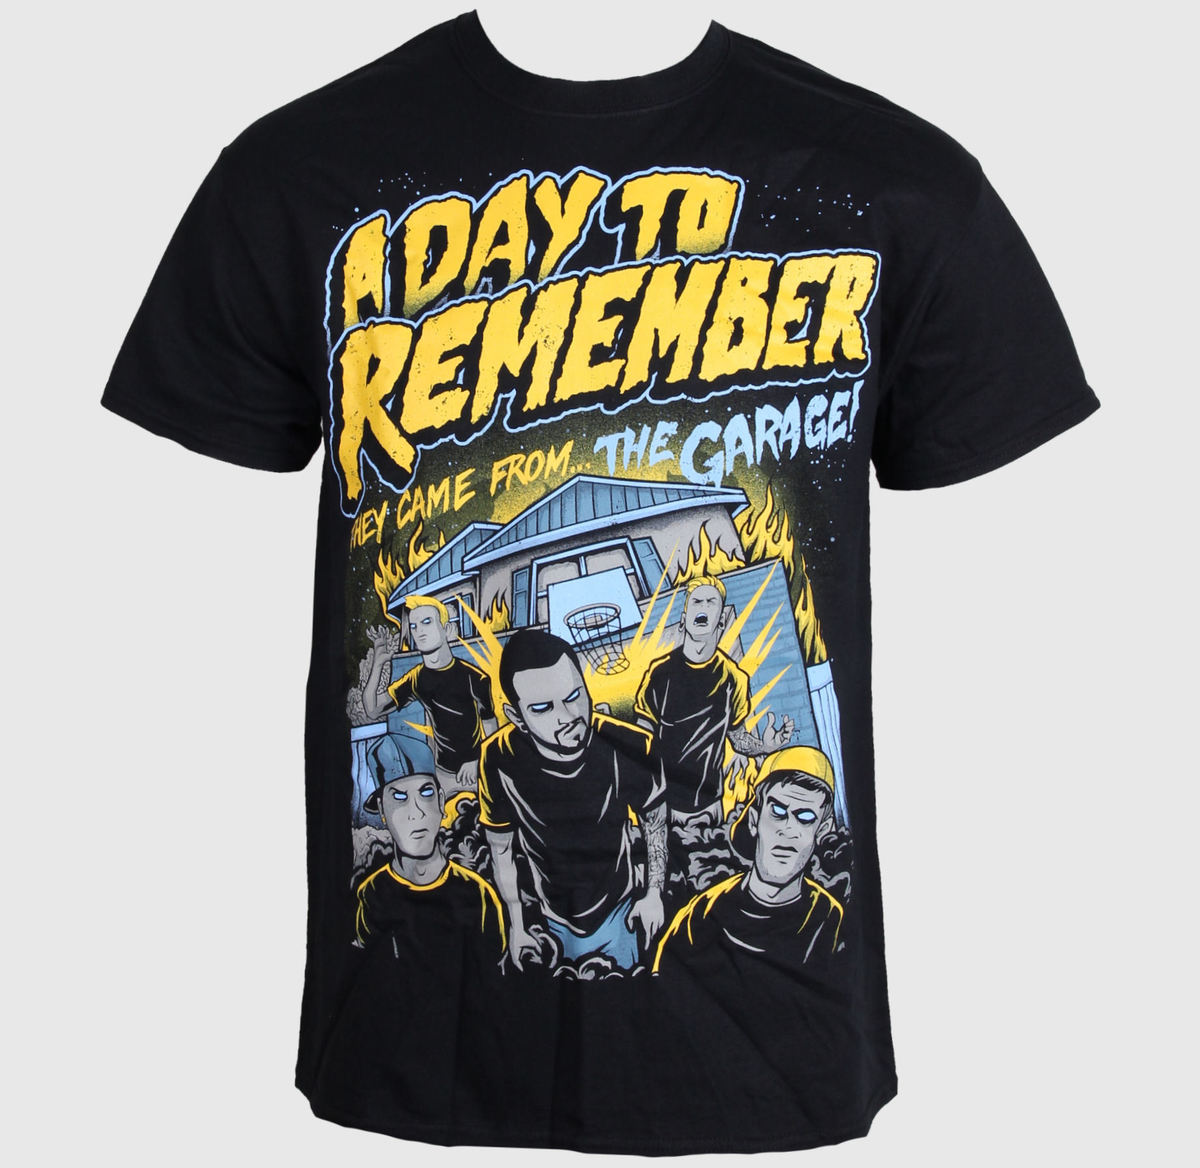 tričko pánské A Day To Remember - They Came From The Garage - Black - LIVE NATION - PE11939